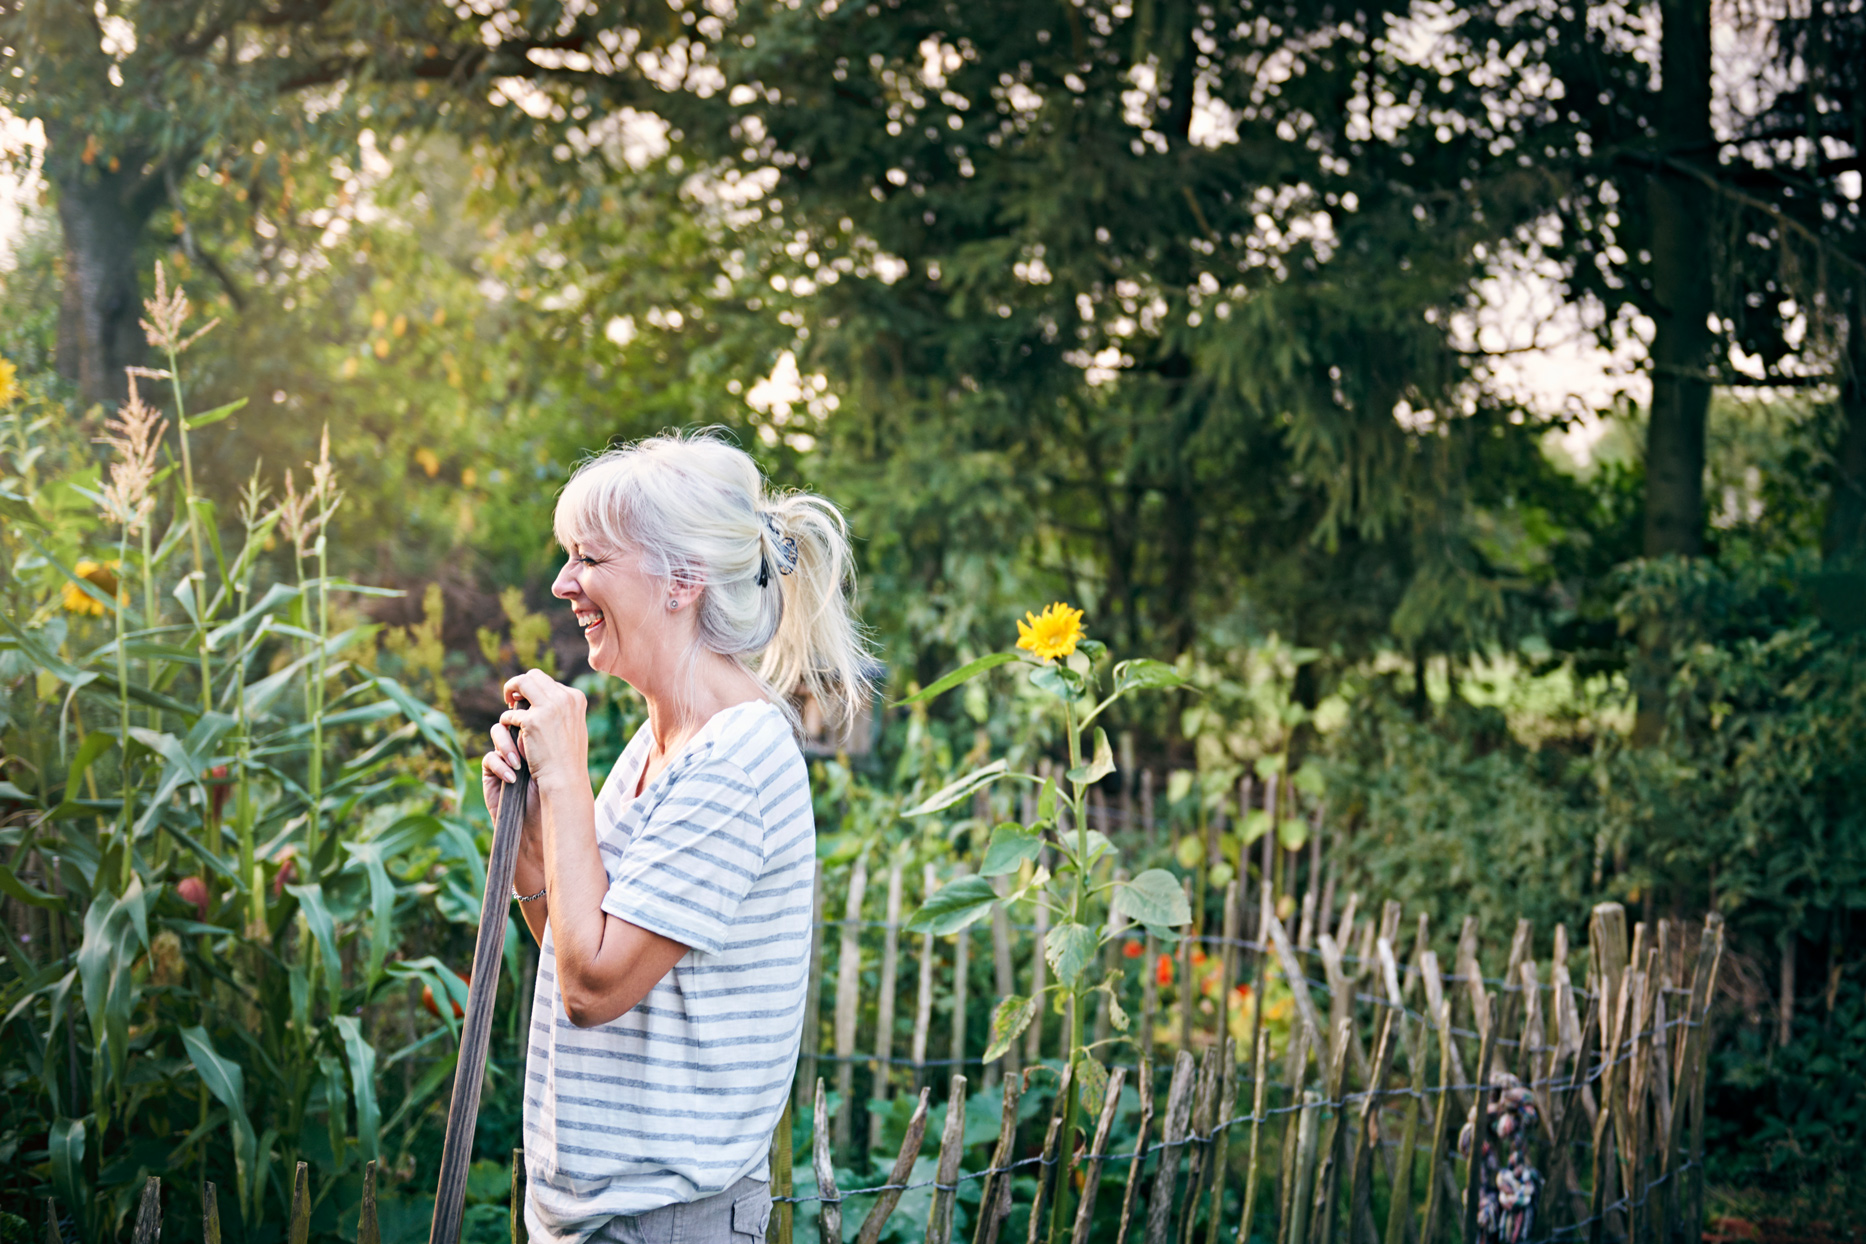 person laughing in garden holding gardening tool